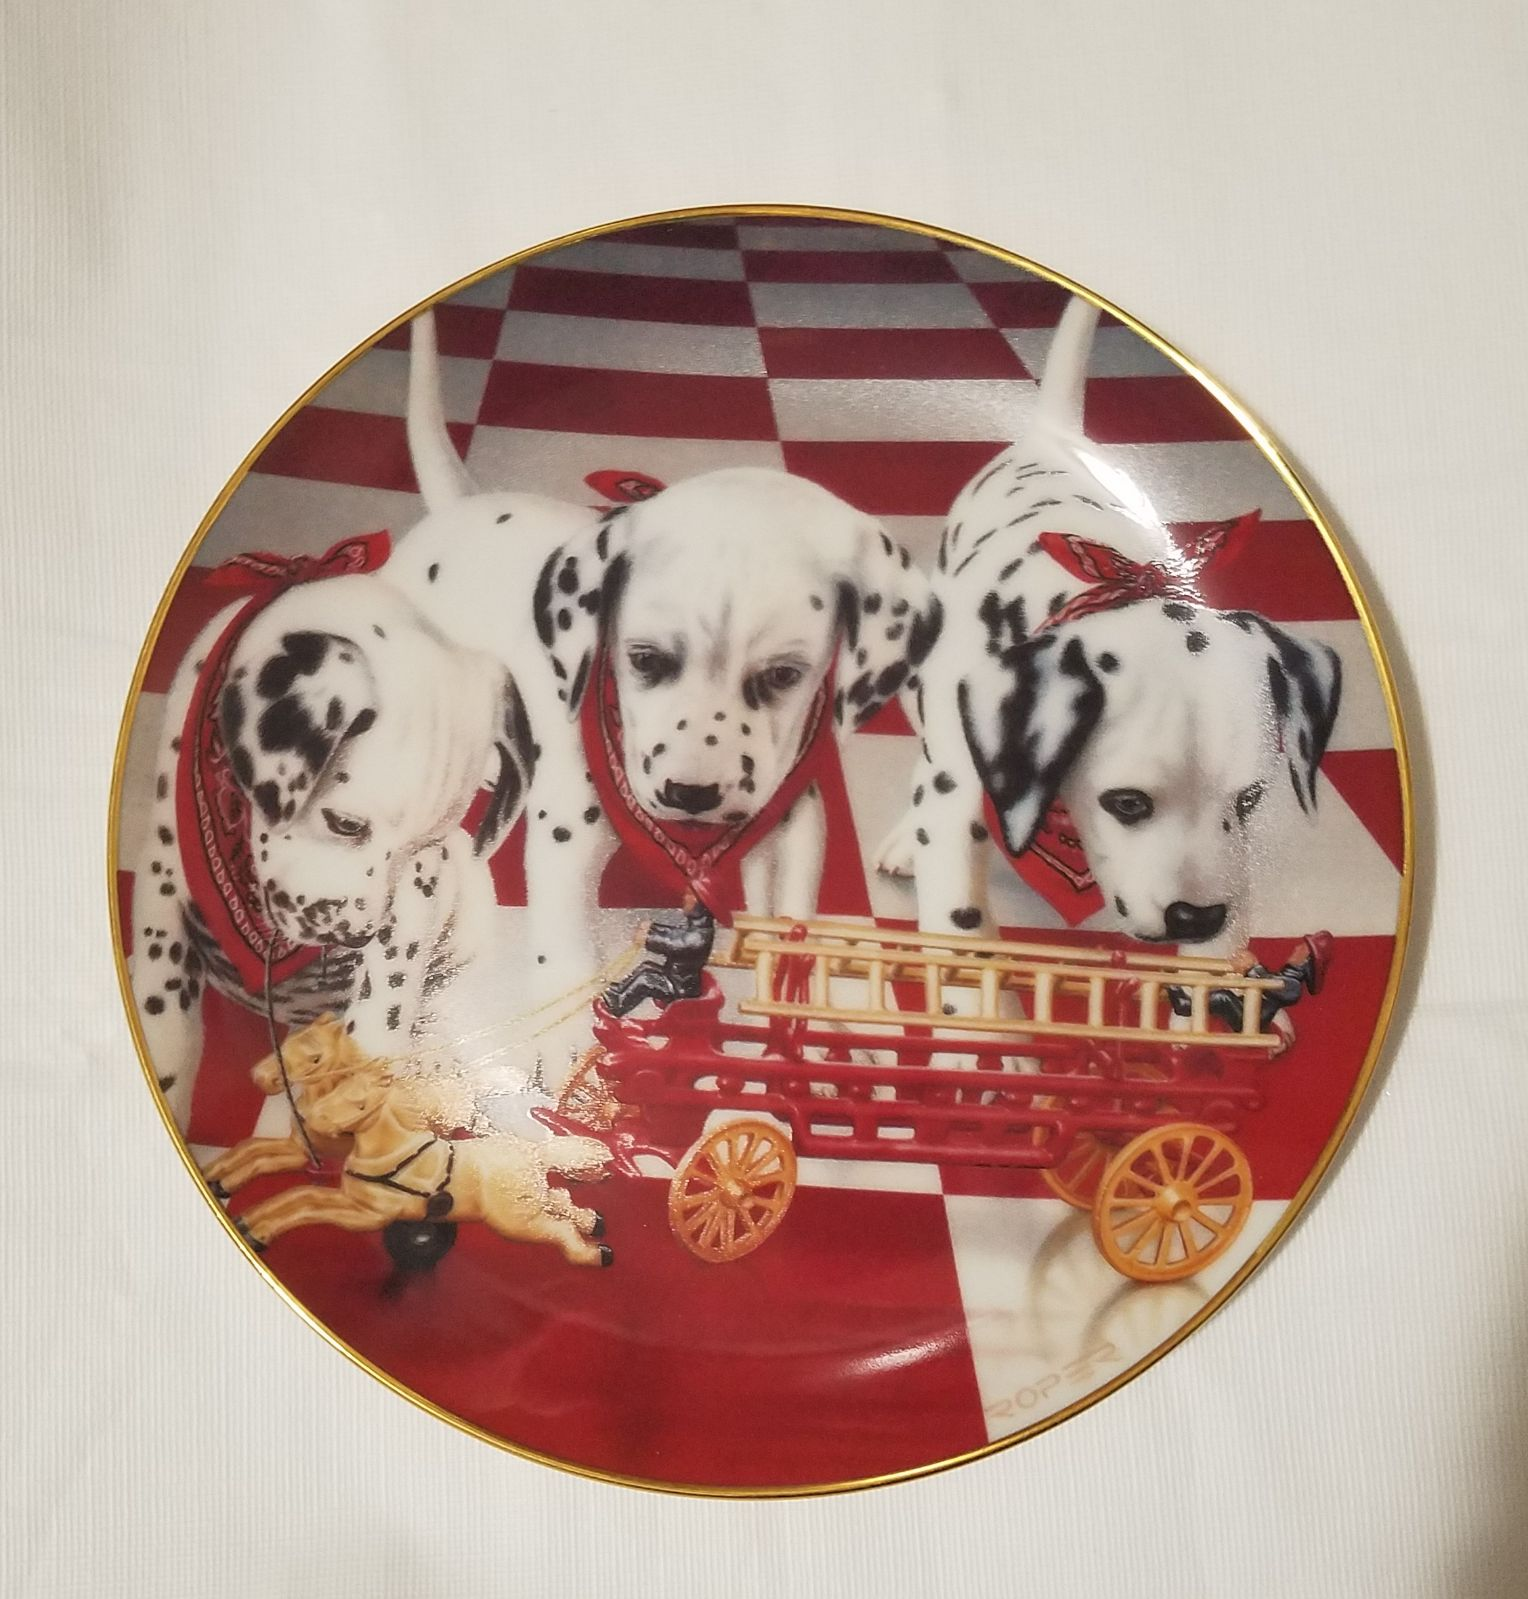 3 puppy dalmatians collectible plate